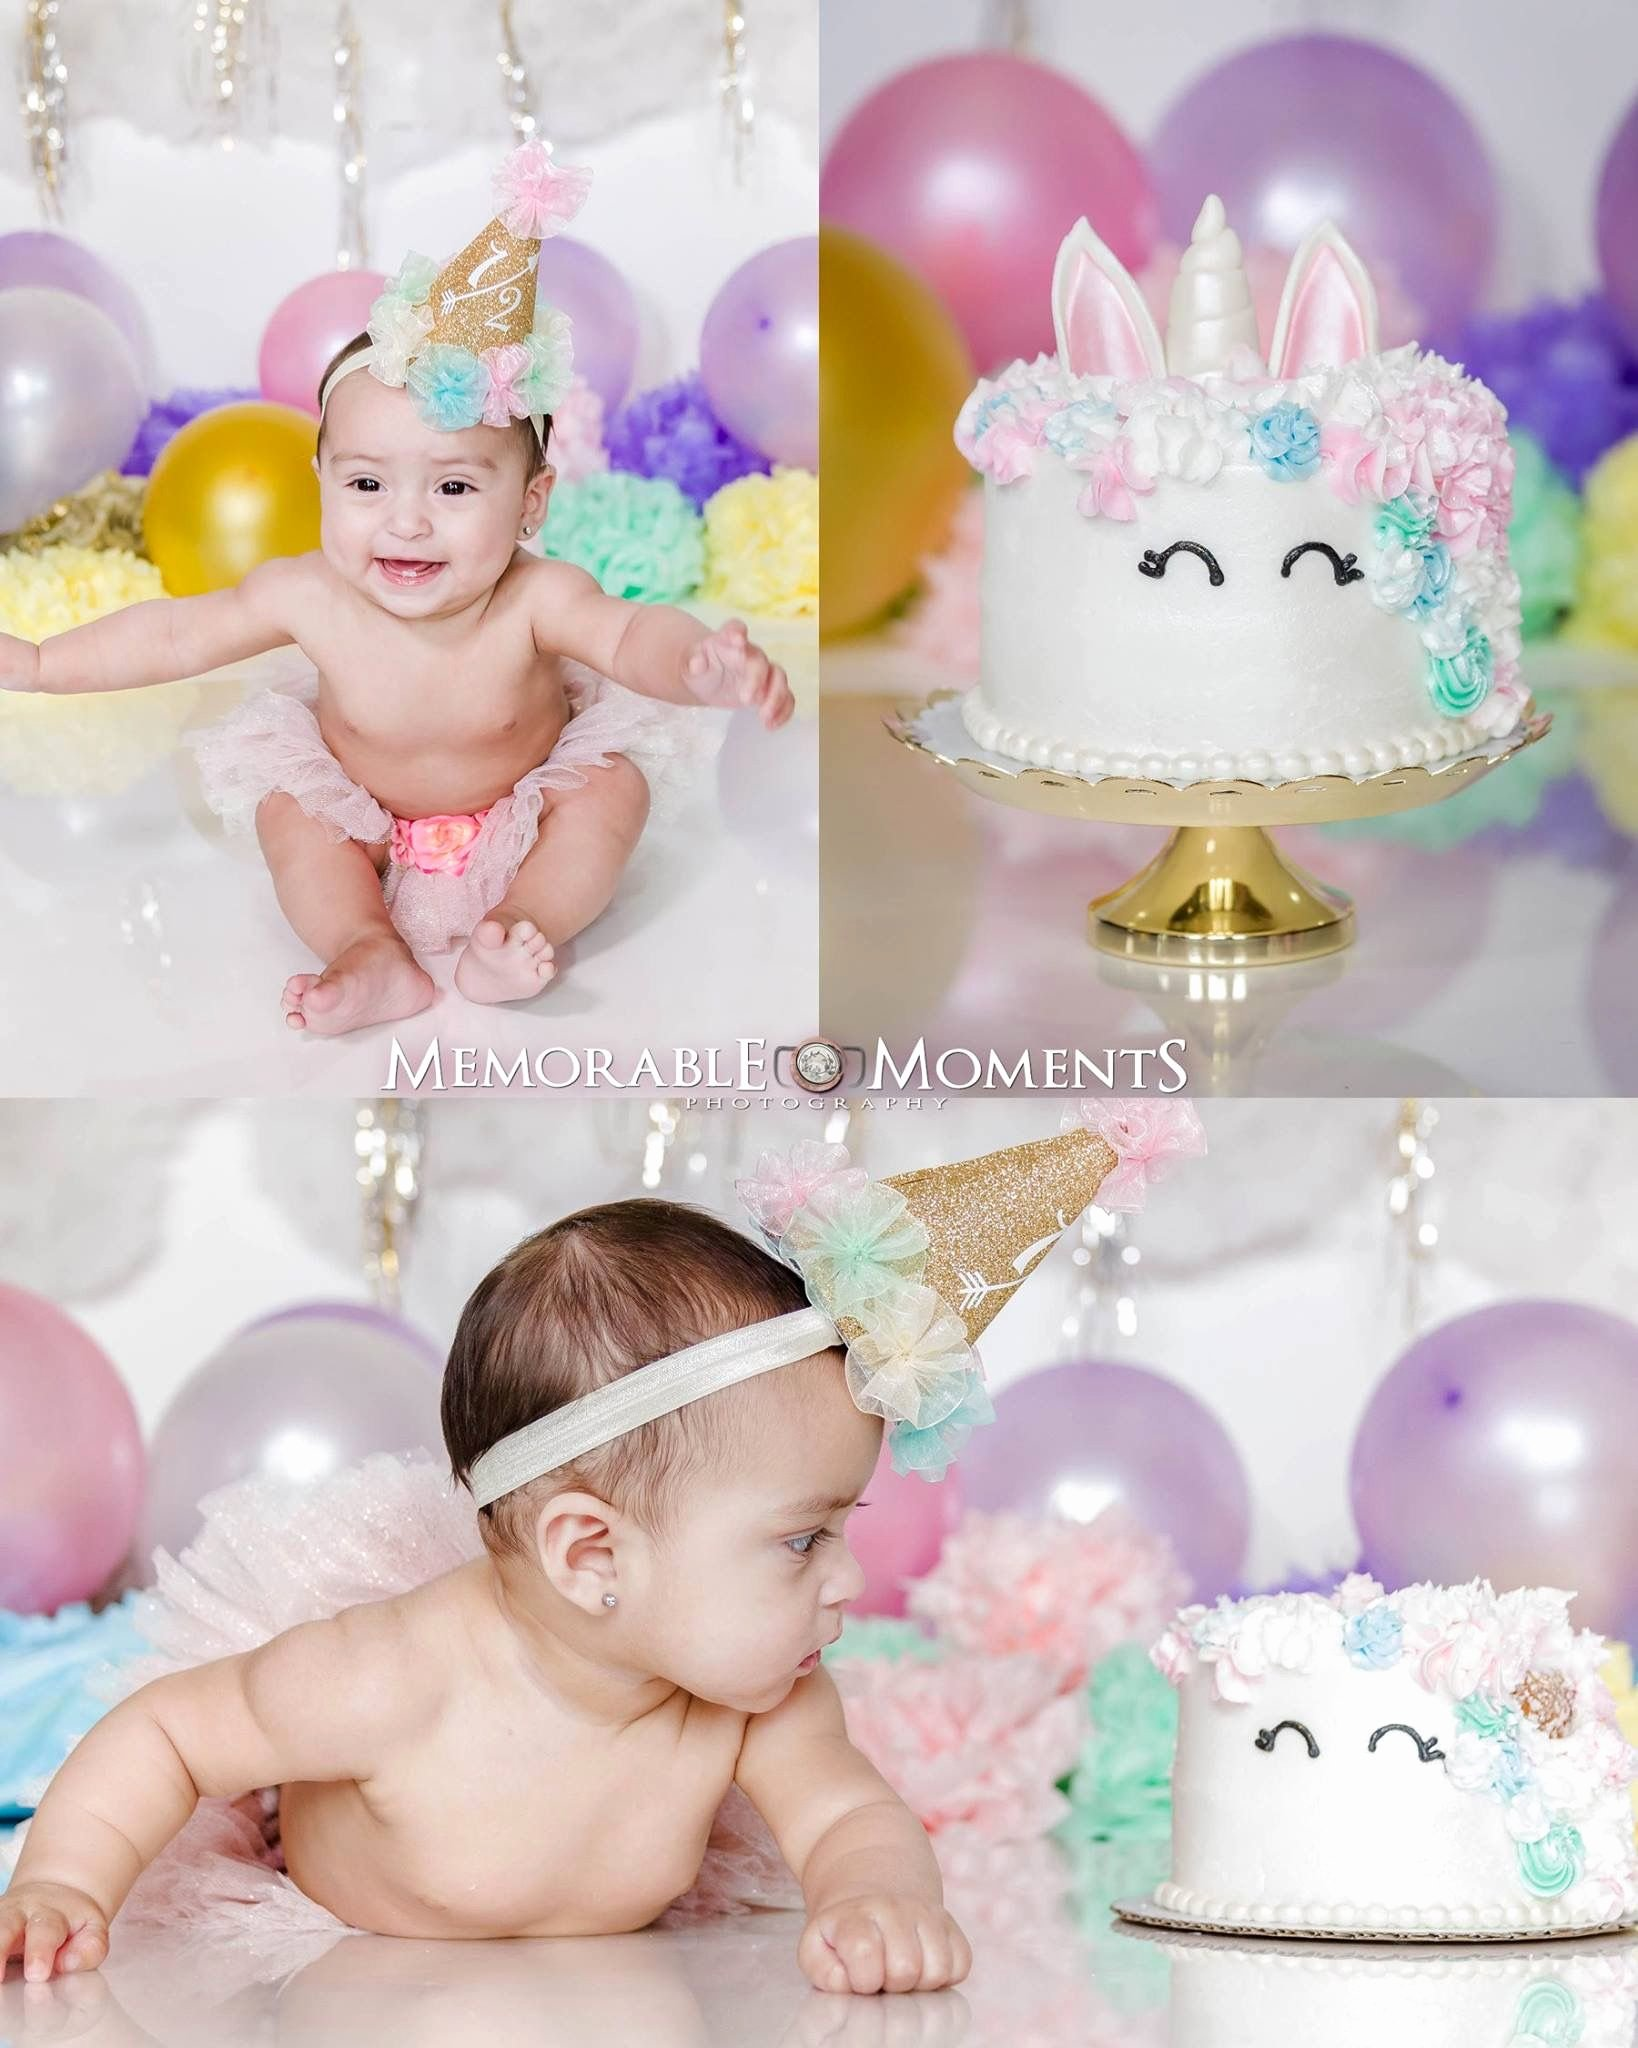 Half Birthday Decoration Ideas Awesome Half Birthday Unicorn themed Smash Cake 6 Months Birthday